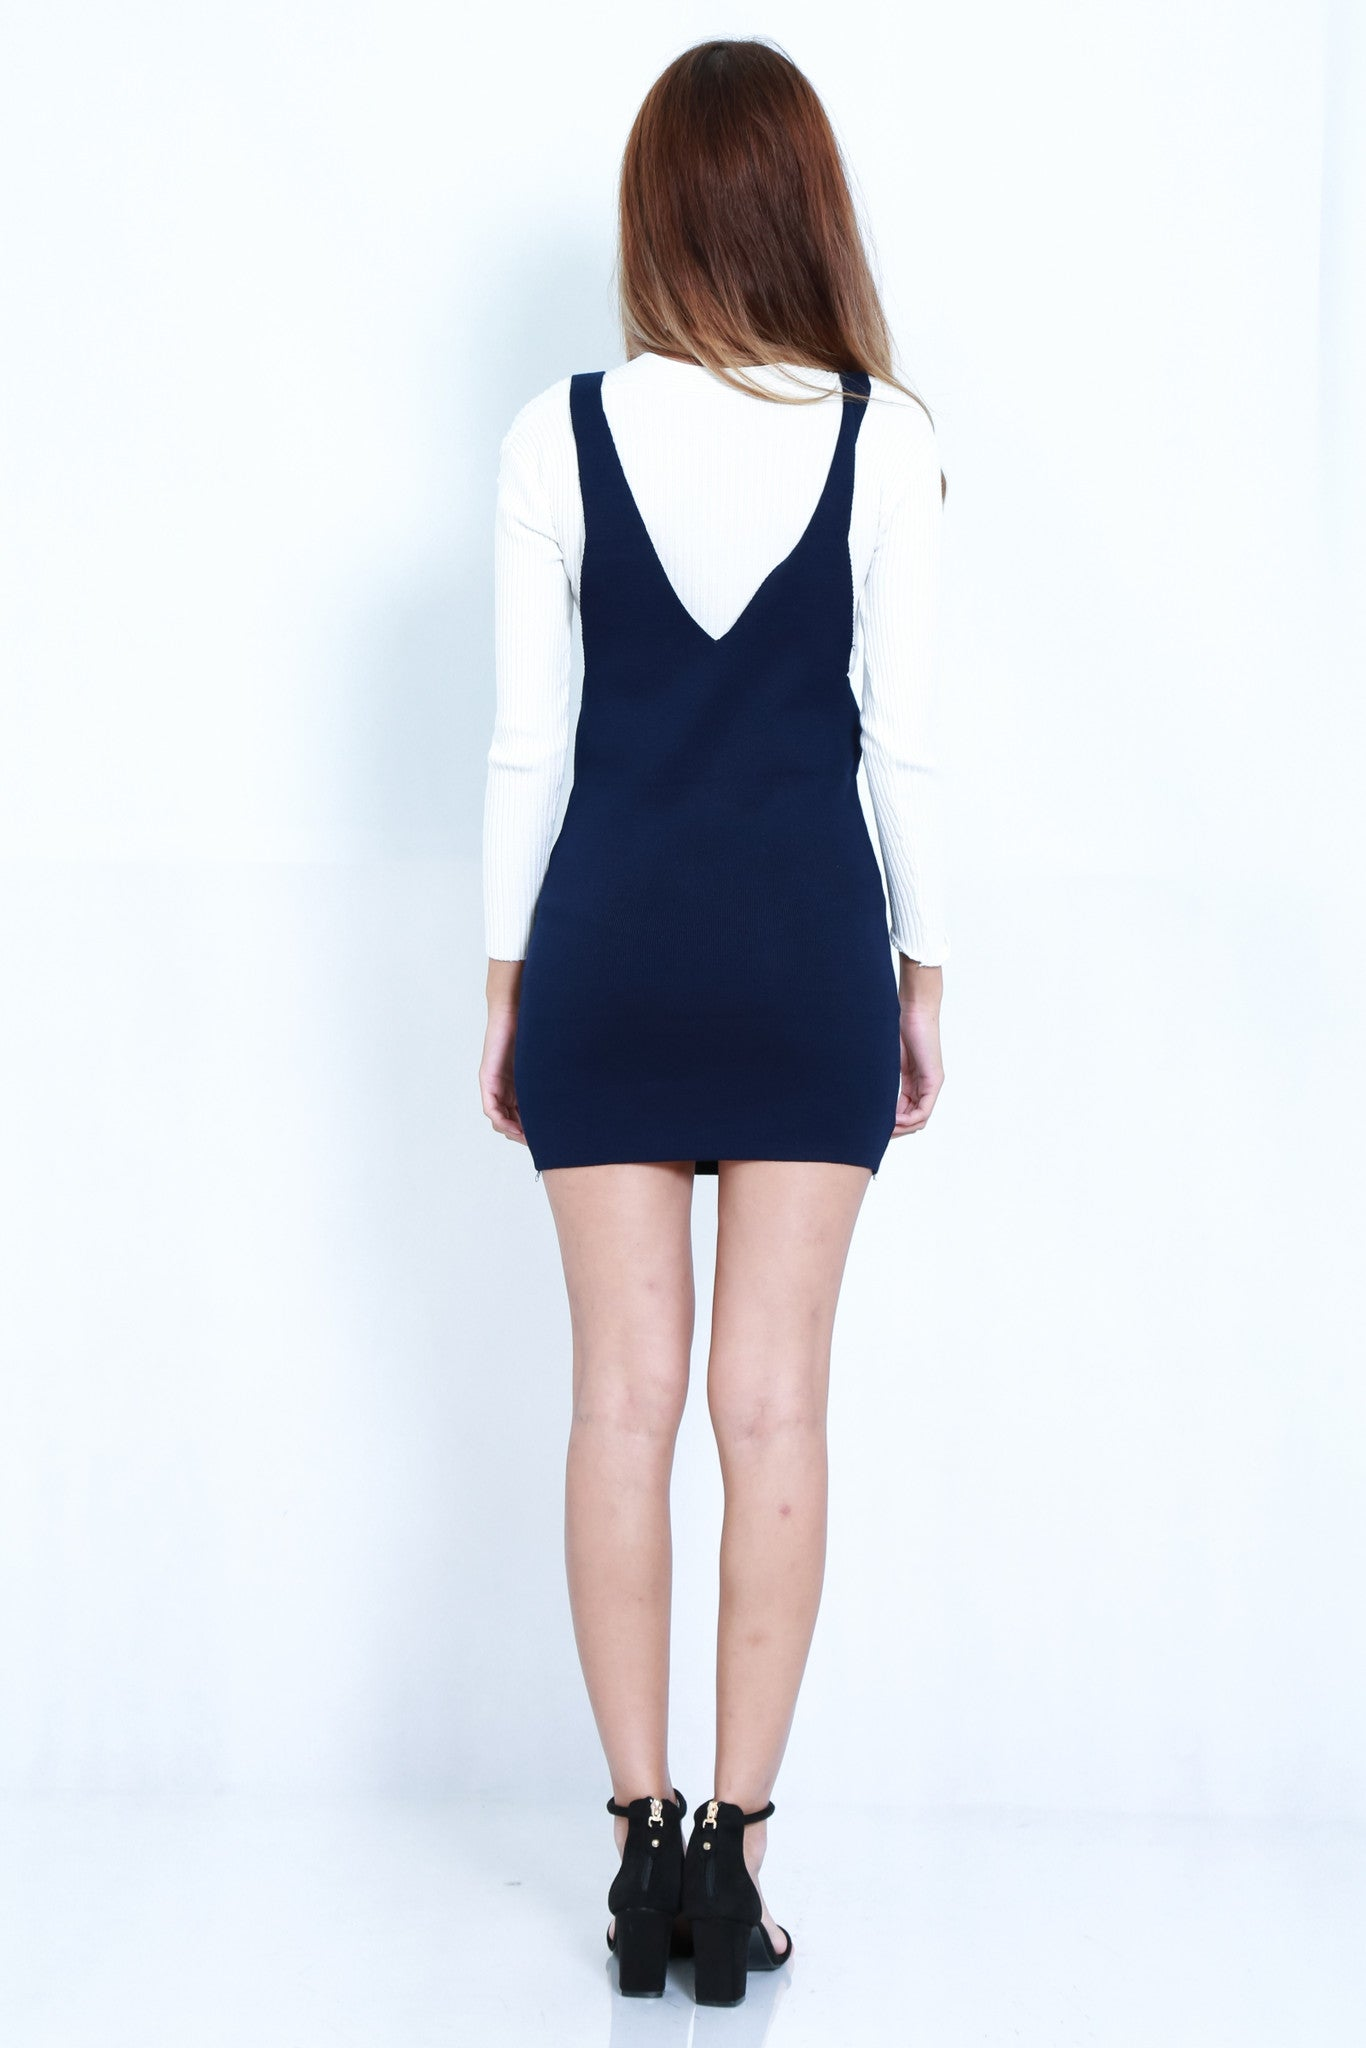 (RESTOCKED) CLASSIC KNIT DUNGAREE DRESS IN NAVY - TOPAZETTE